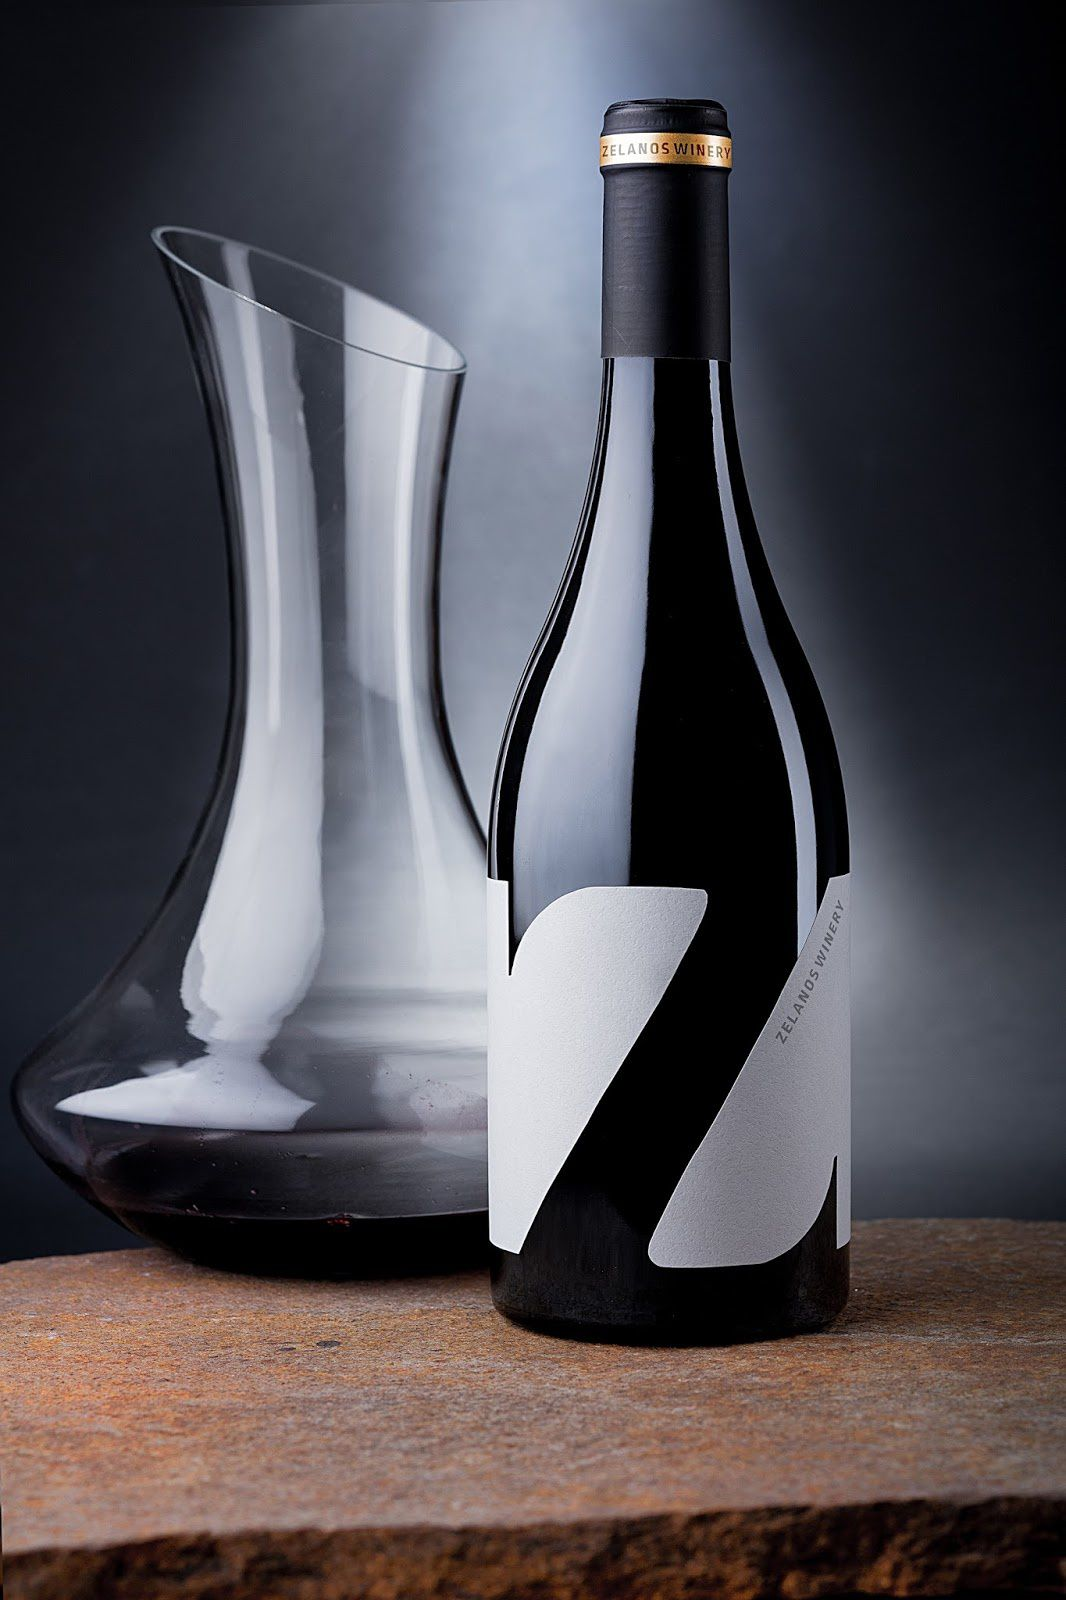 """Z"" - Zelanos Winery (vin) I Design : the Labelmaker, Bulgarie (octobre 2016)"